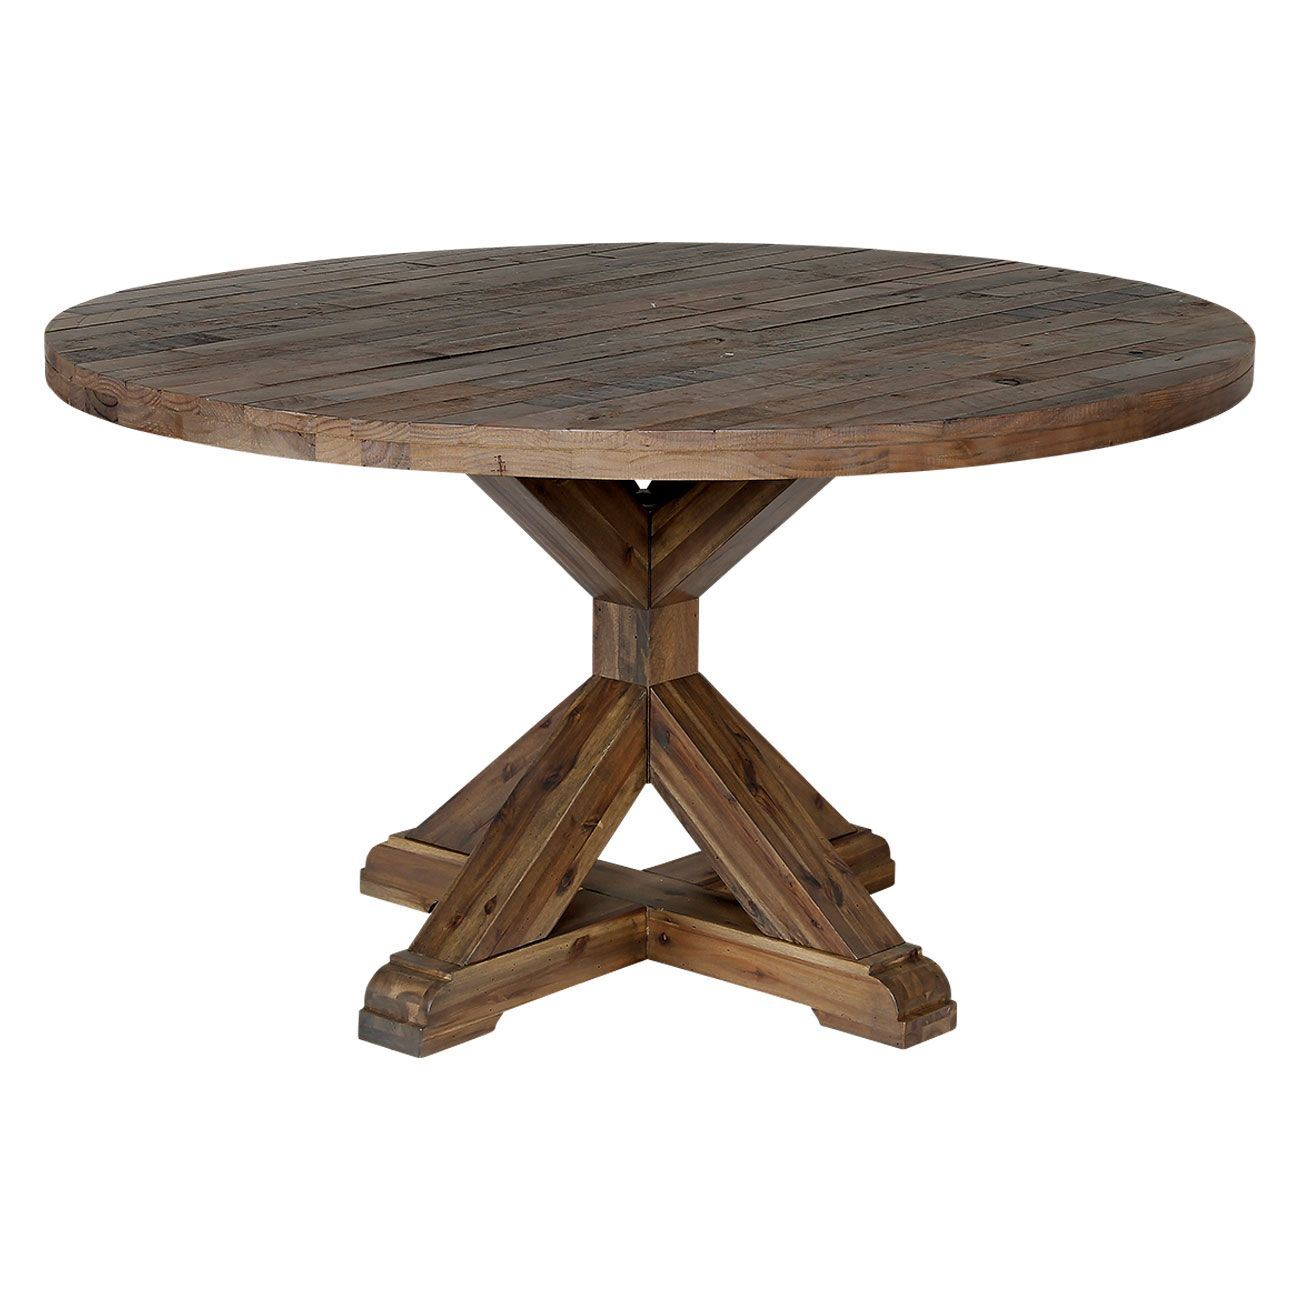 end large wood small black bedside unfinished antique distressed table accent oak tall round diy tables pedestal outstanding full size painting cabinets furniture legs tree stump